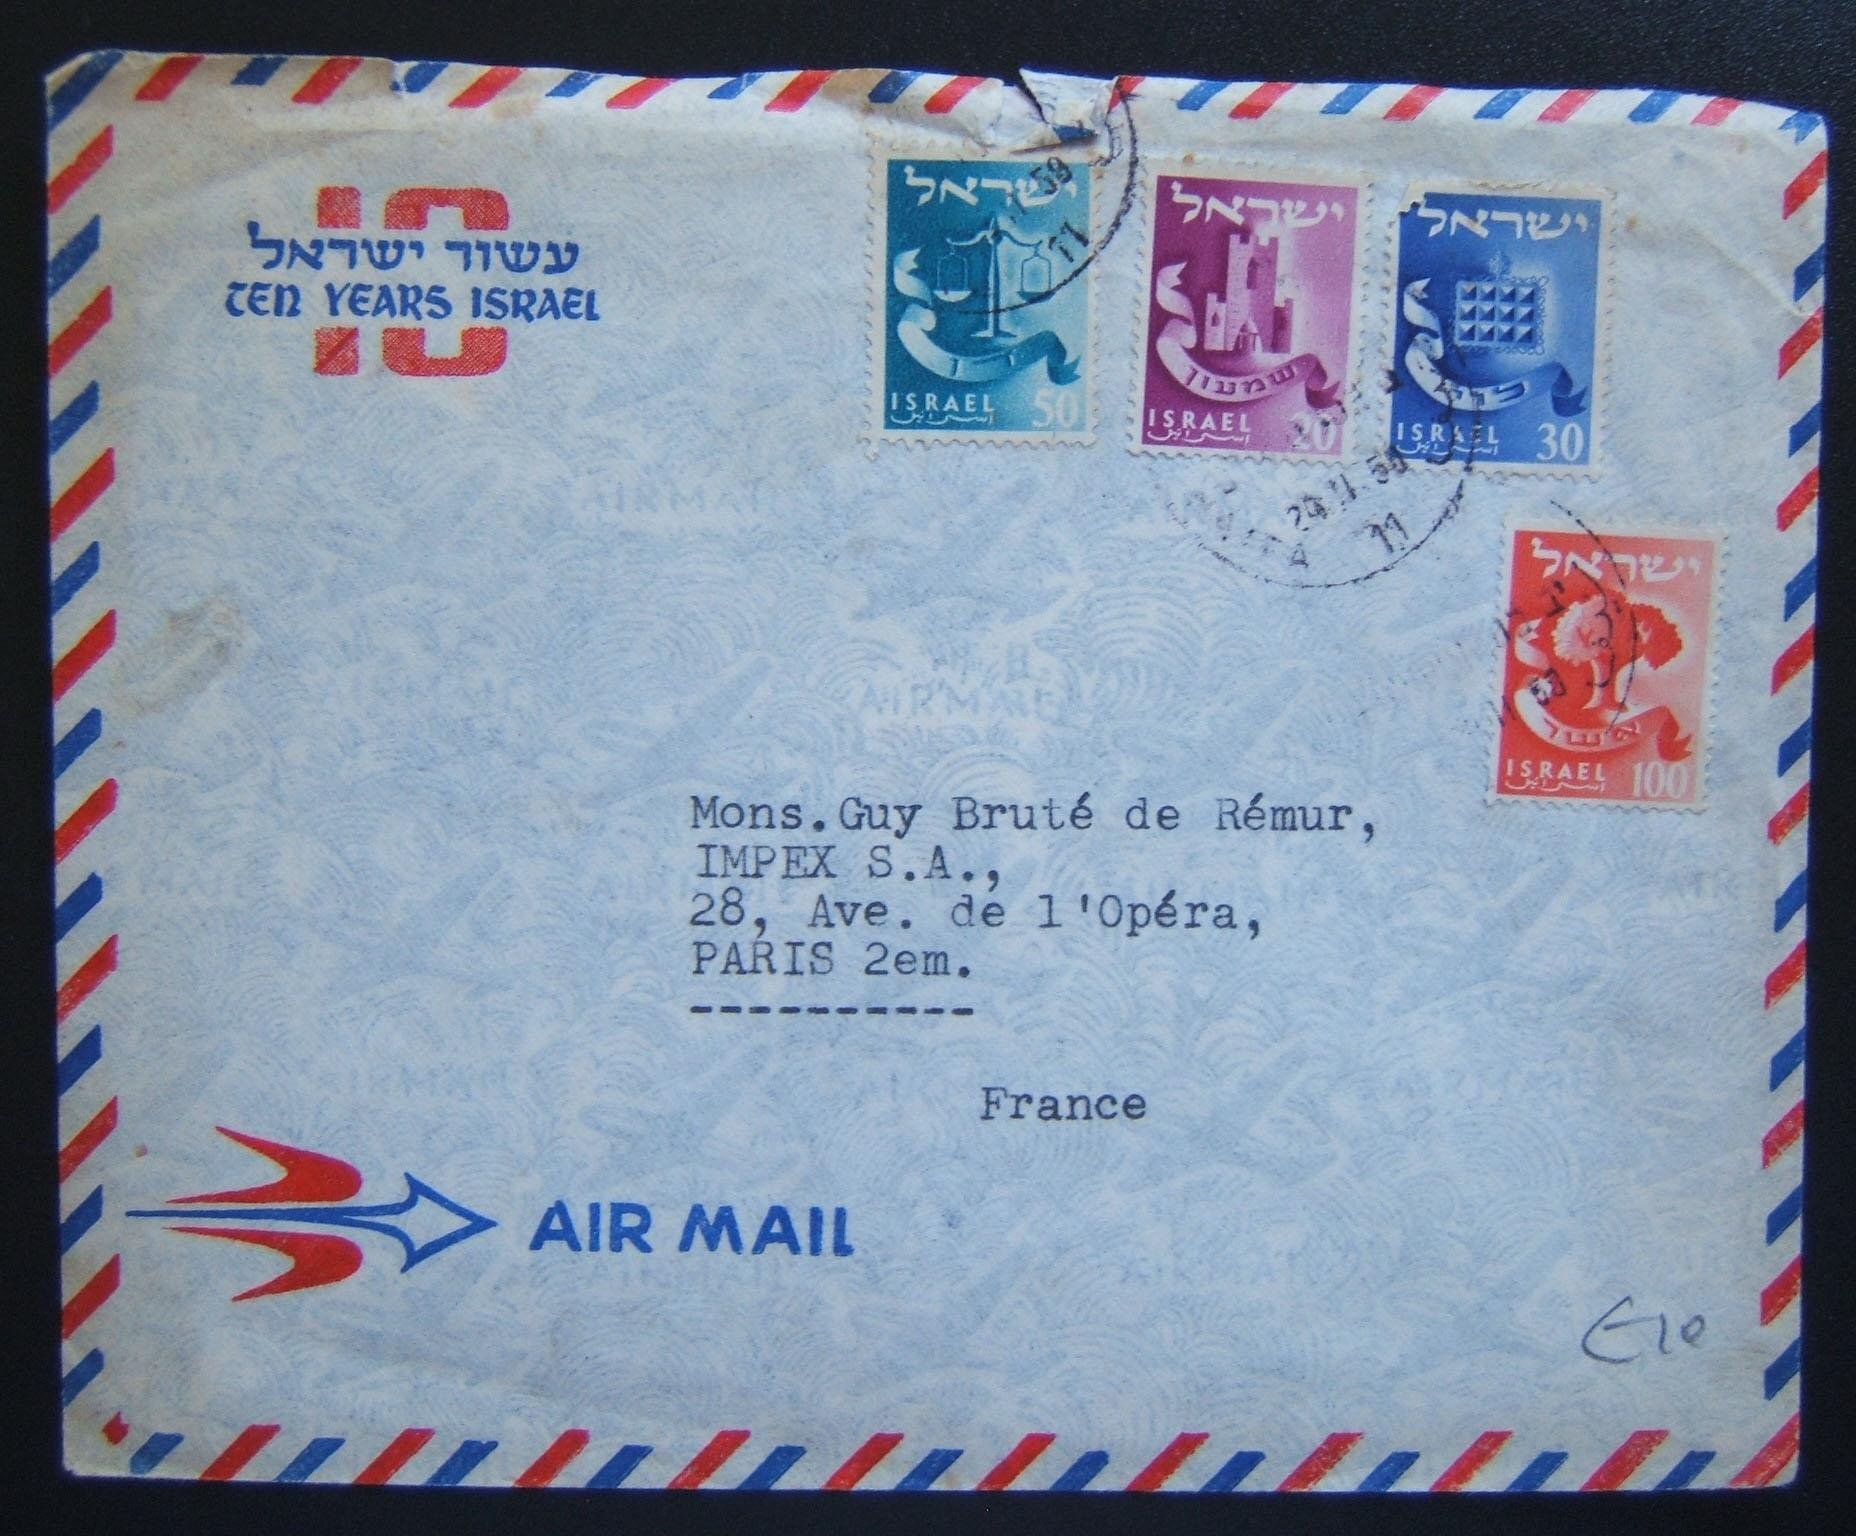 1958 '12 Tribes' franked airmail: 24-11-1958 comm cv on Israel 10th Anniversary airmail stationary ex HAIFA to PARIS franked 200pr at period FA-7 rate to Europe using 4 different f